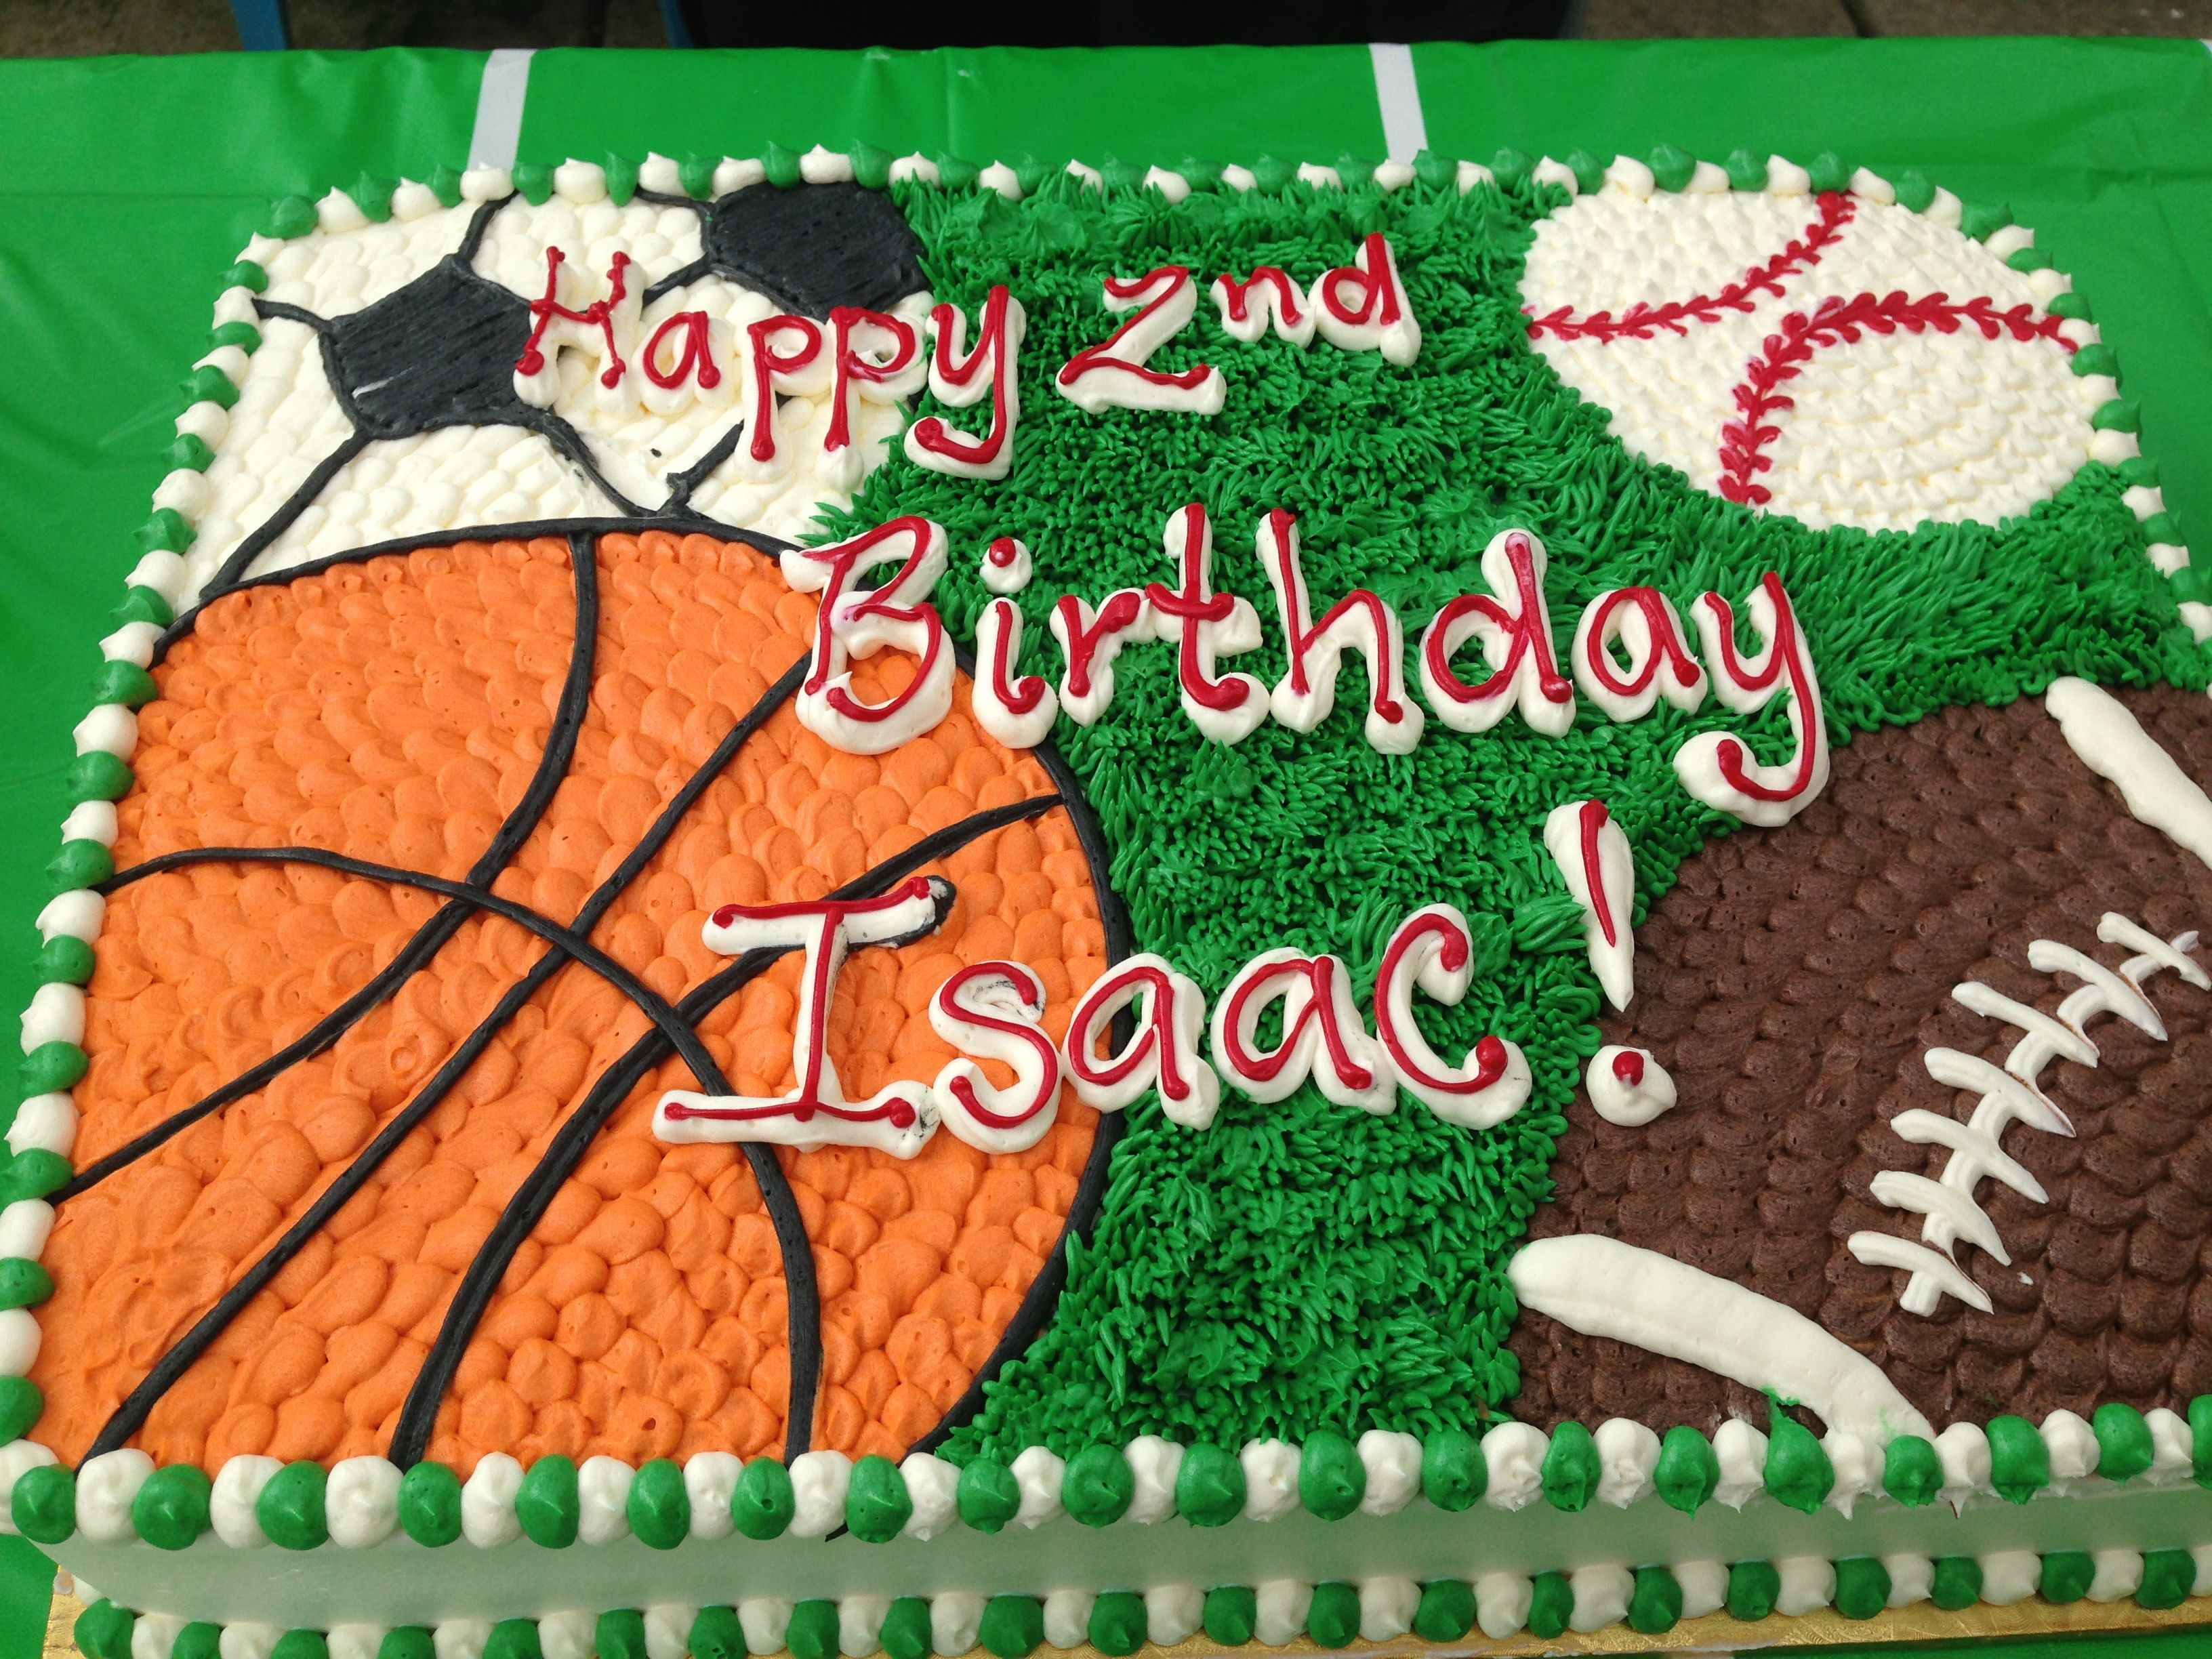 Sensational Sports Theme Cake With Images Sports Themed Birthday Party Funny Birthday Cards Online Alyptdamsfinfo